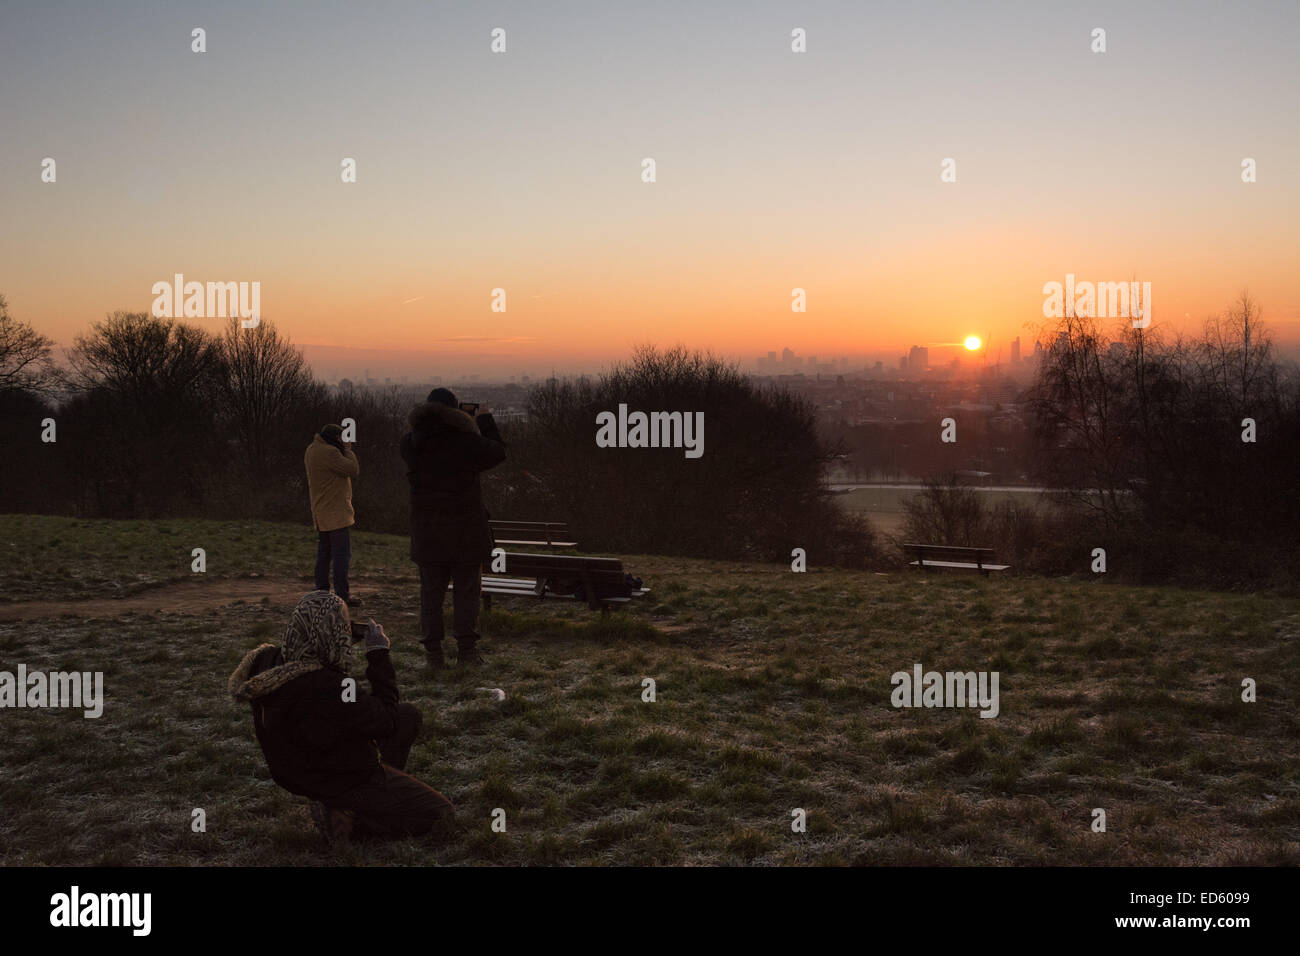 London UK, 29th December 2014. People photograph the view at sunrise on Parliament Hill as London wakes to a beautiful - Stock Image